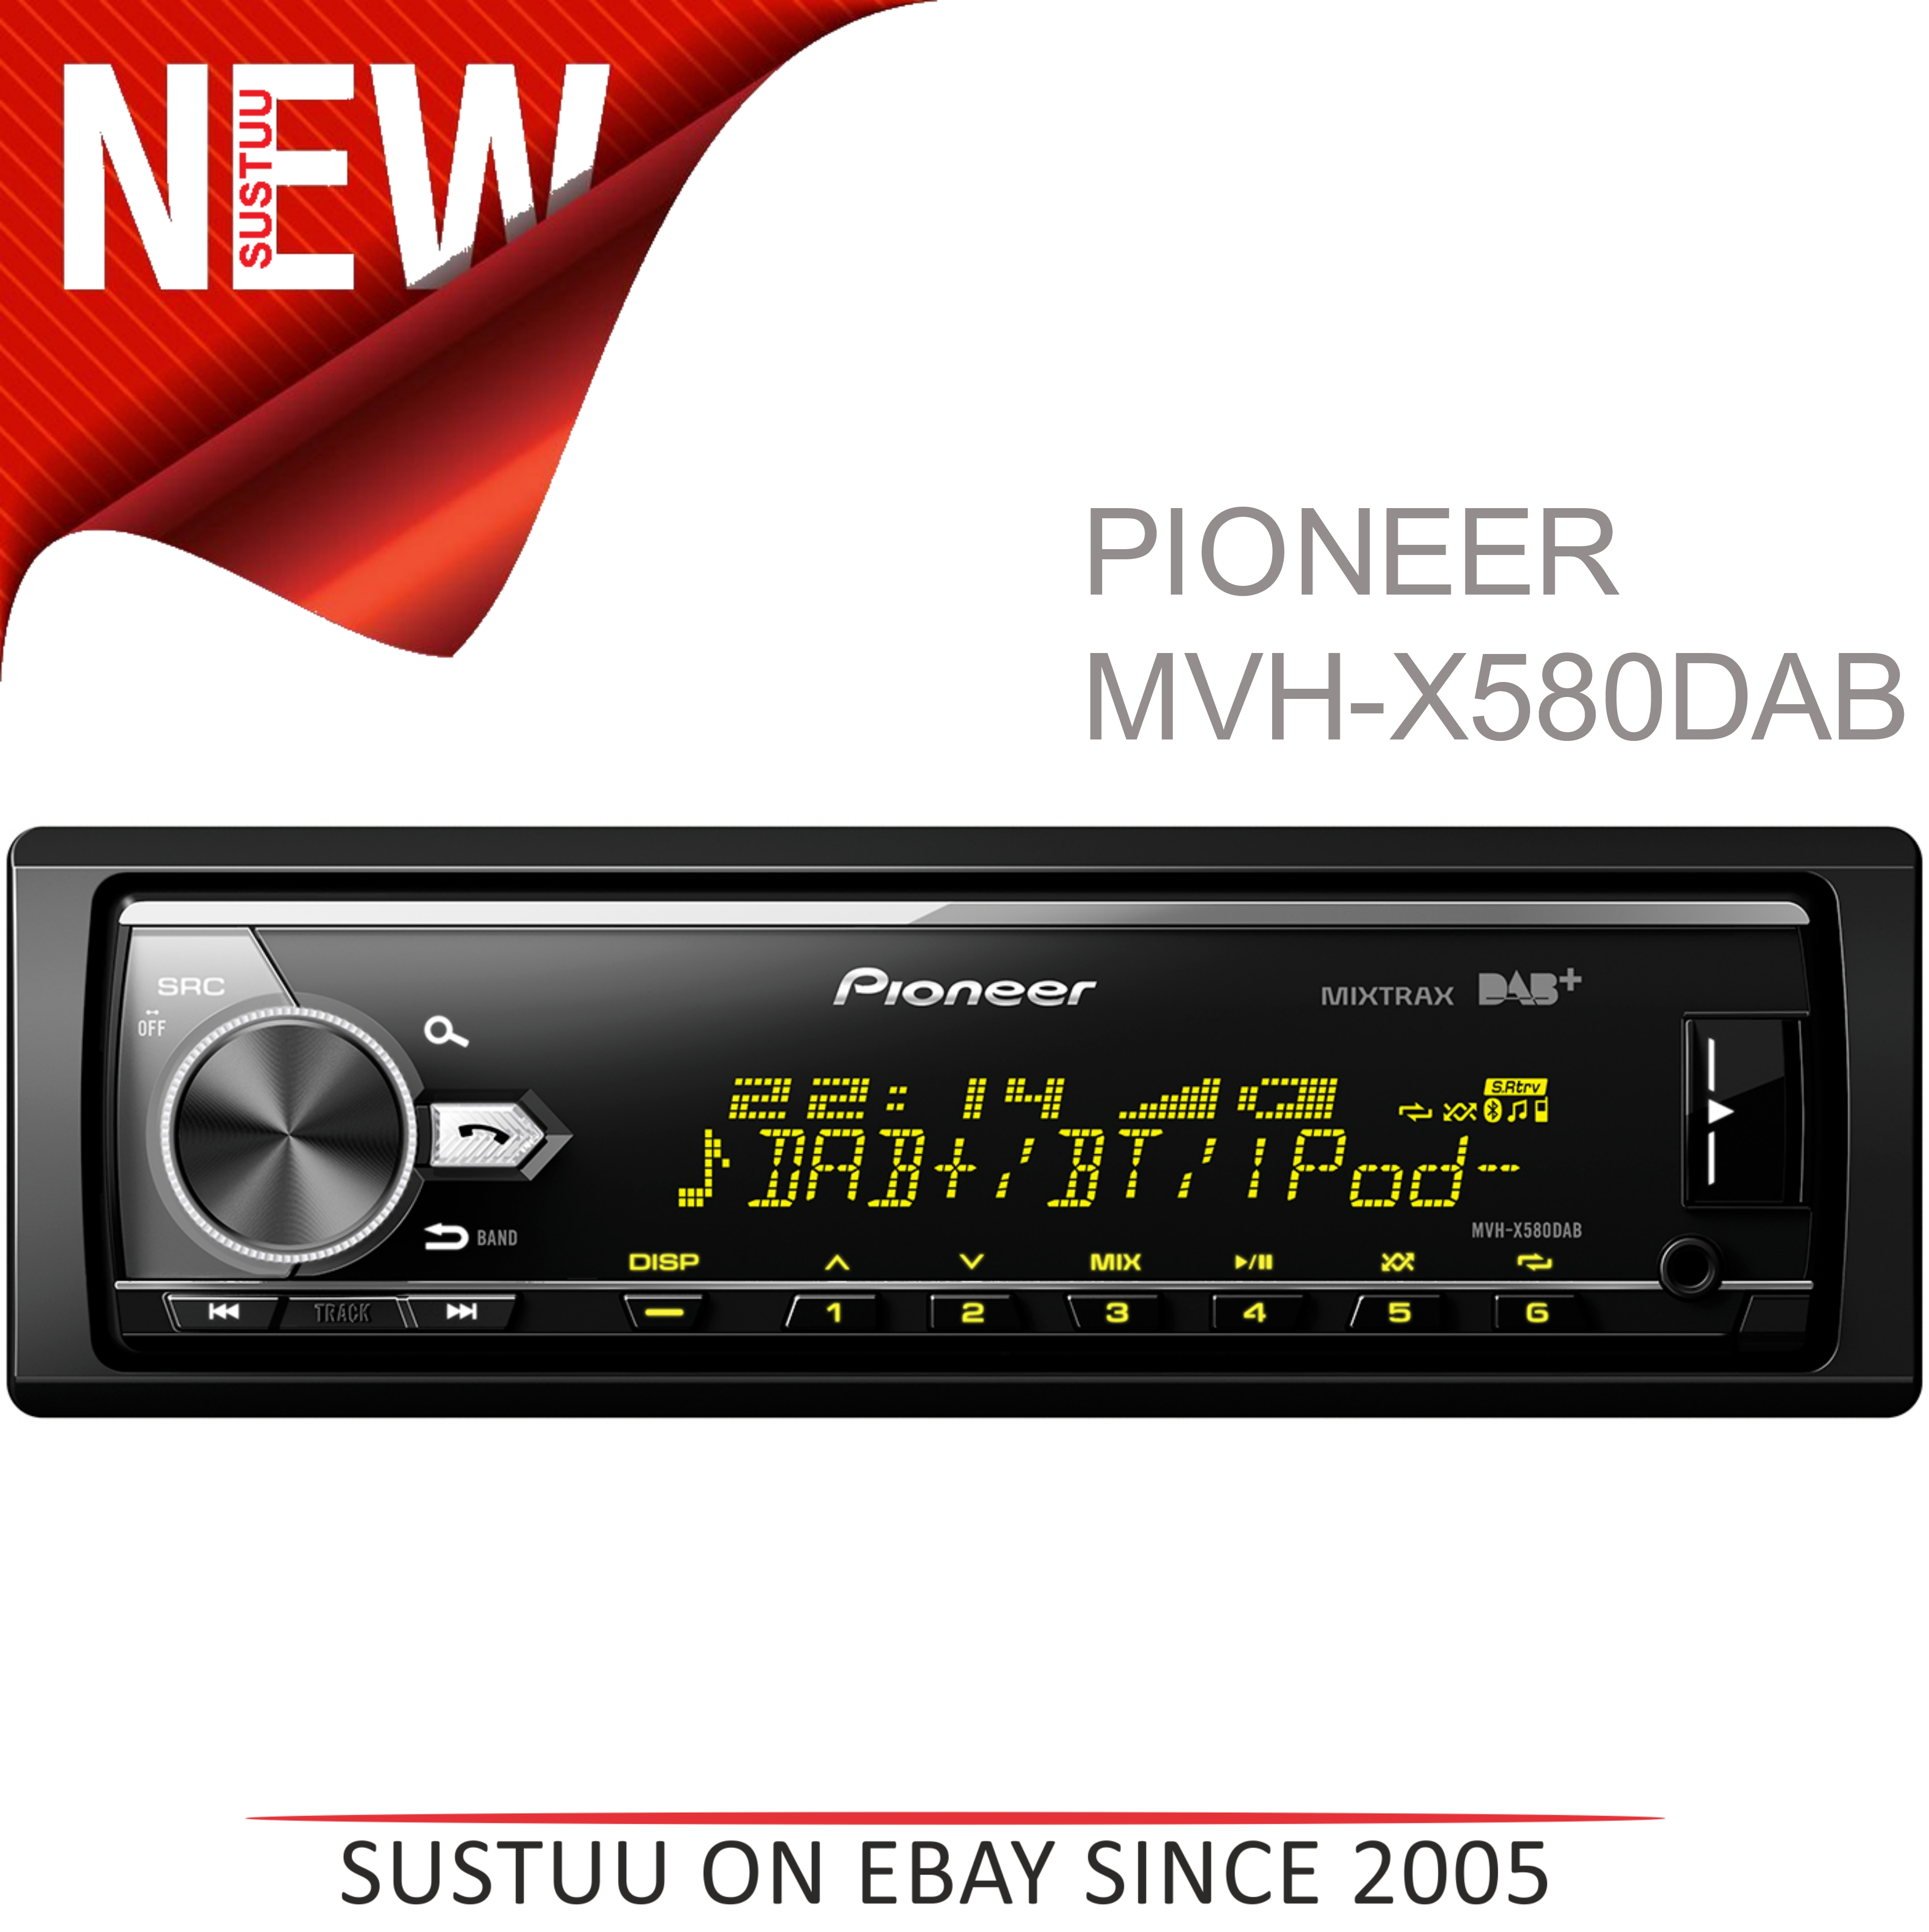 Pioneer MVH X580DAB Car Stereo|DAB+|AM/FM|Bluetooth|USB|Aux|*iPod-iPhone-Android